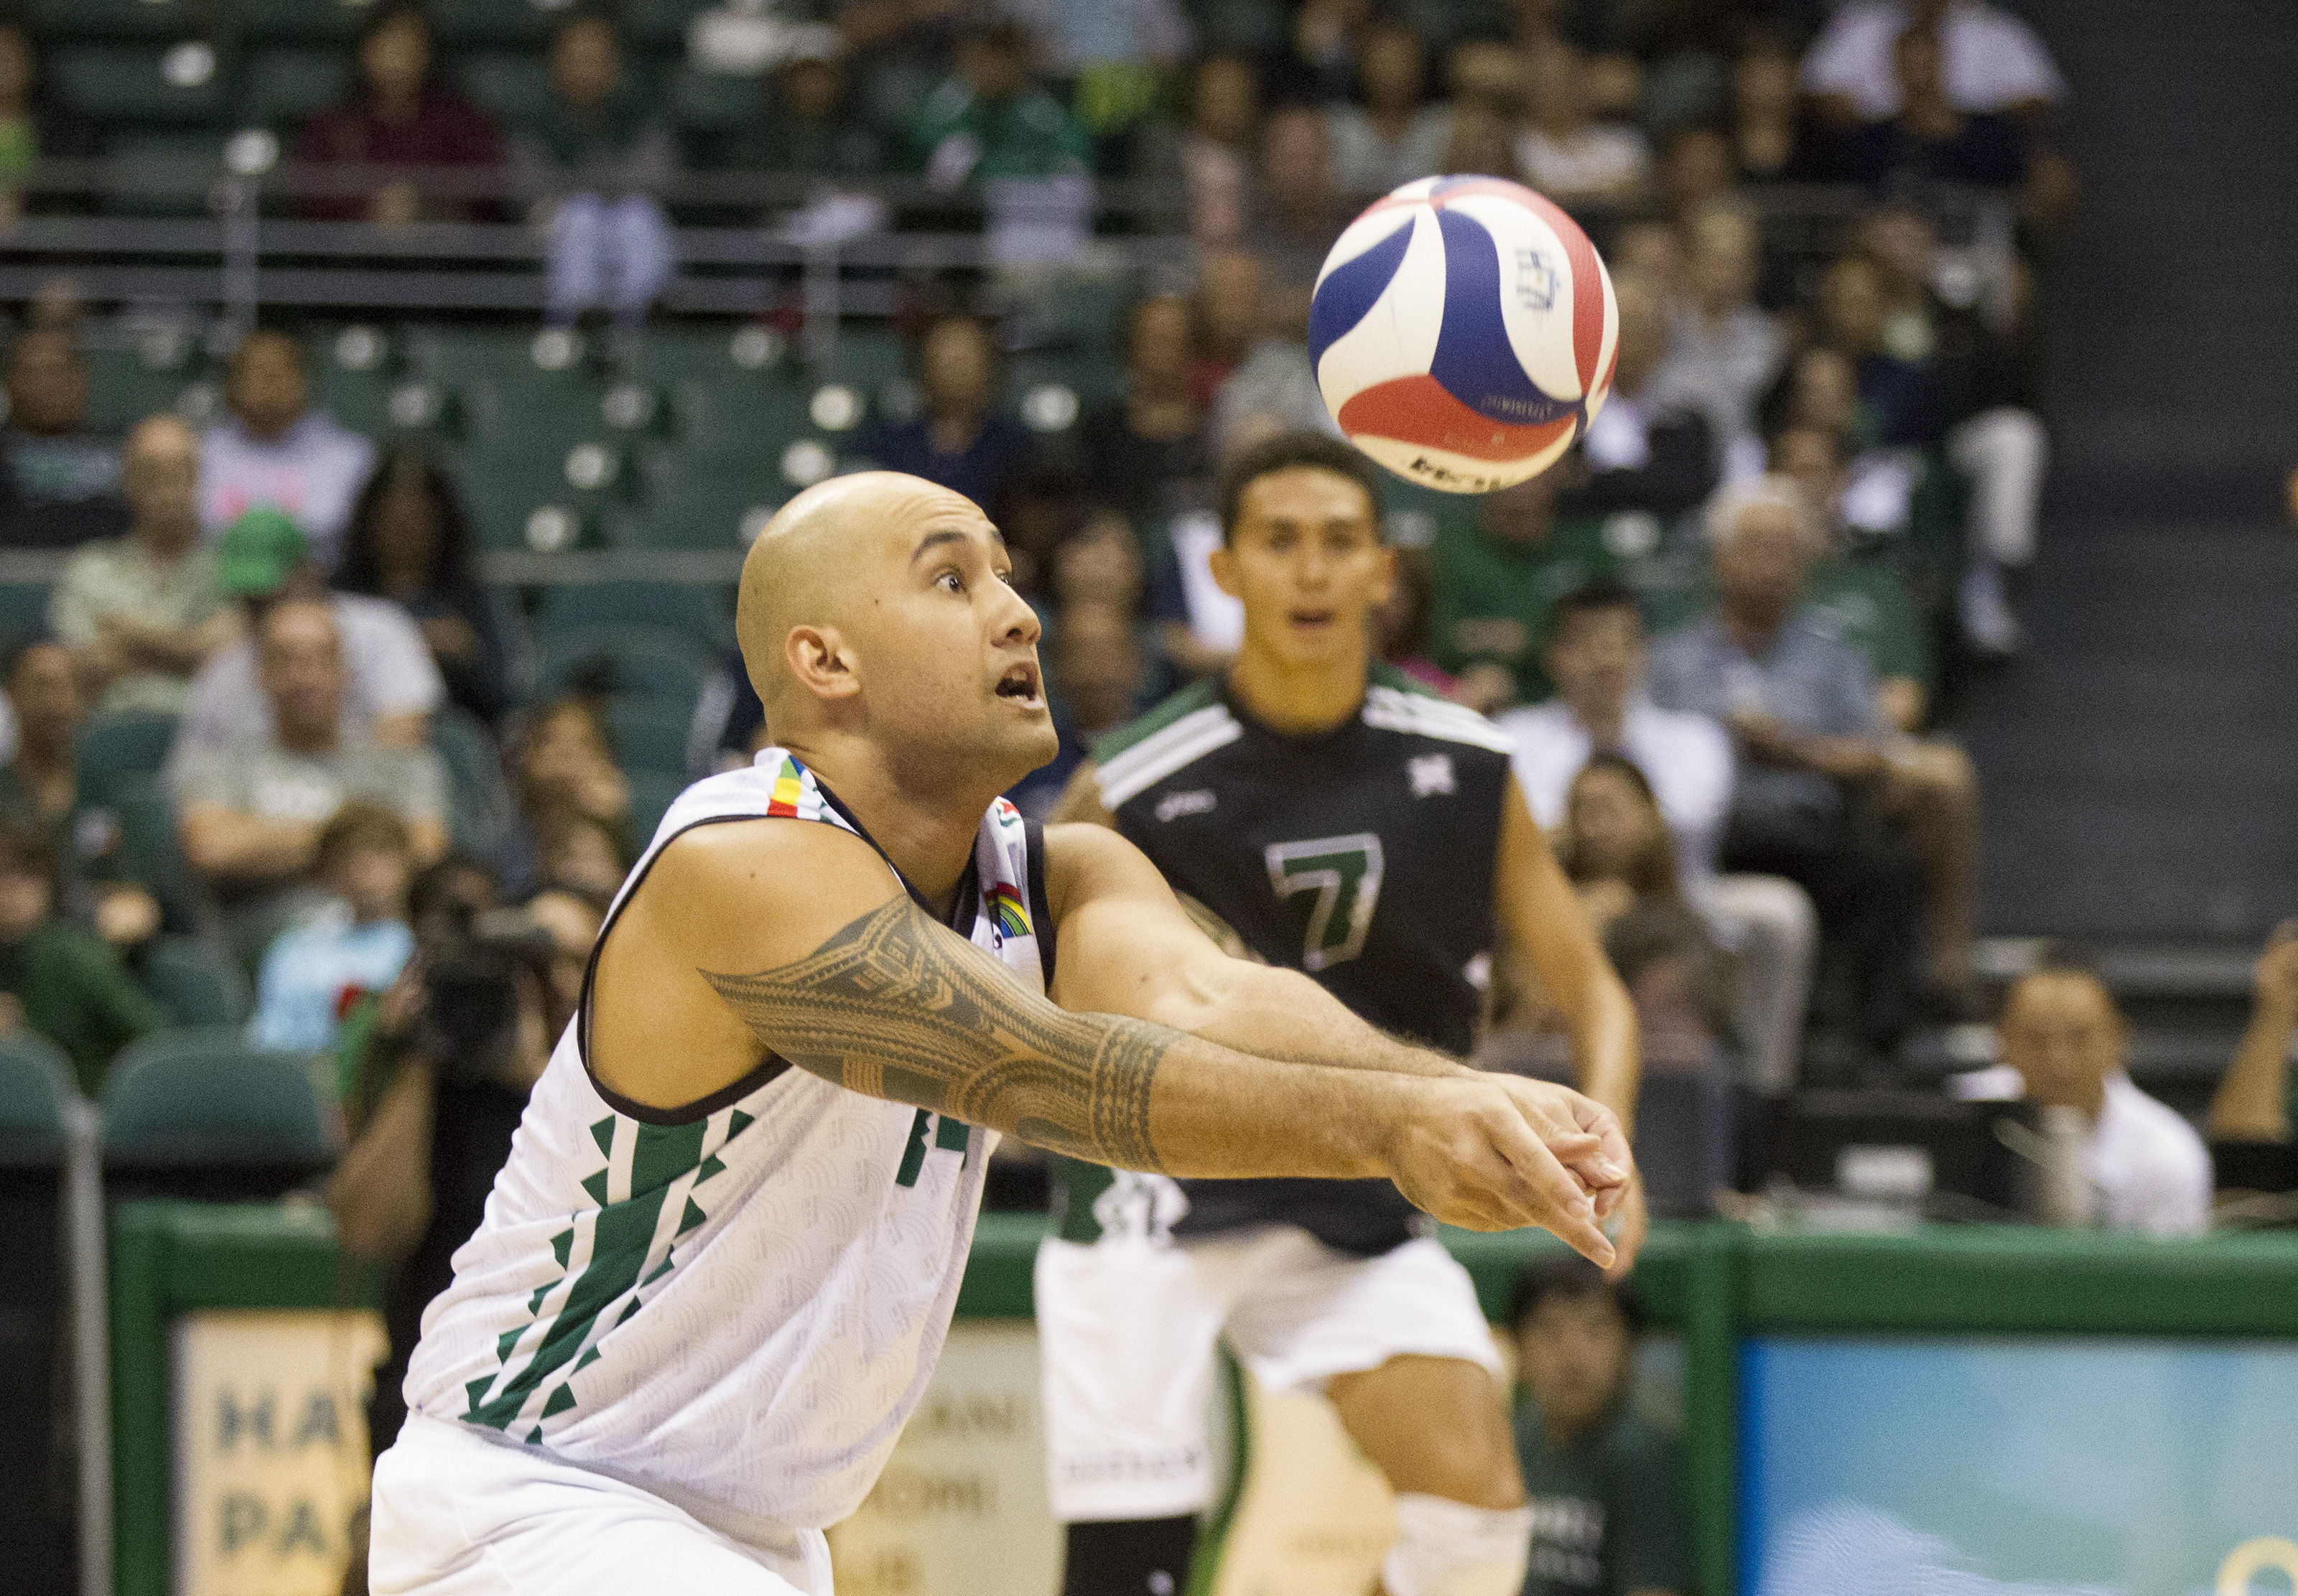 Hawaii outside hitter Larry Tuileta (14) made a dig in the second set of the Outrigger Resorts Invitational match against the Princeton Tigers held on Friday.